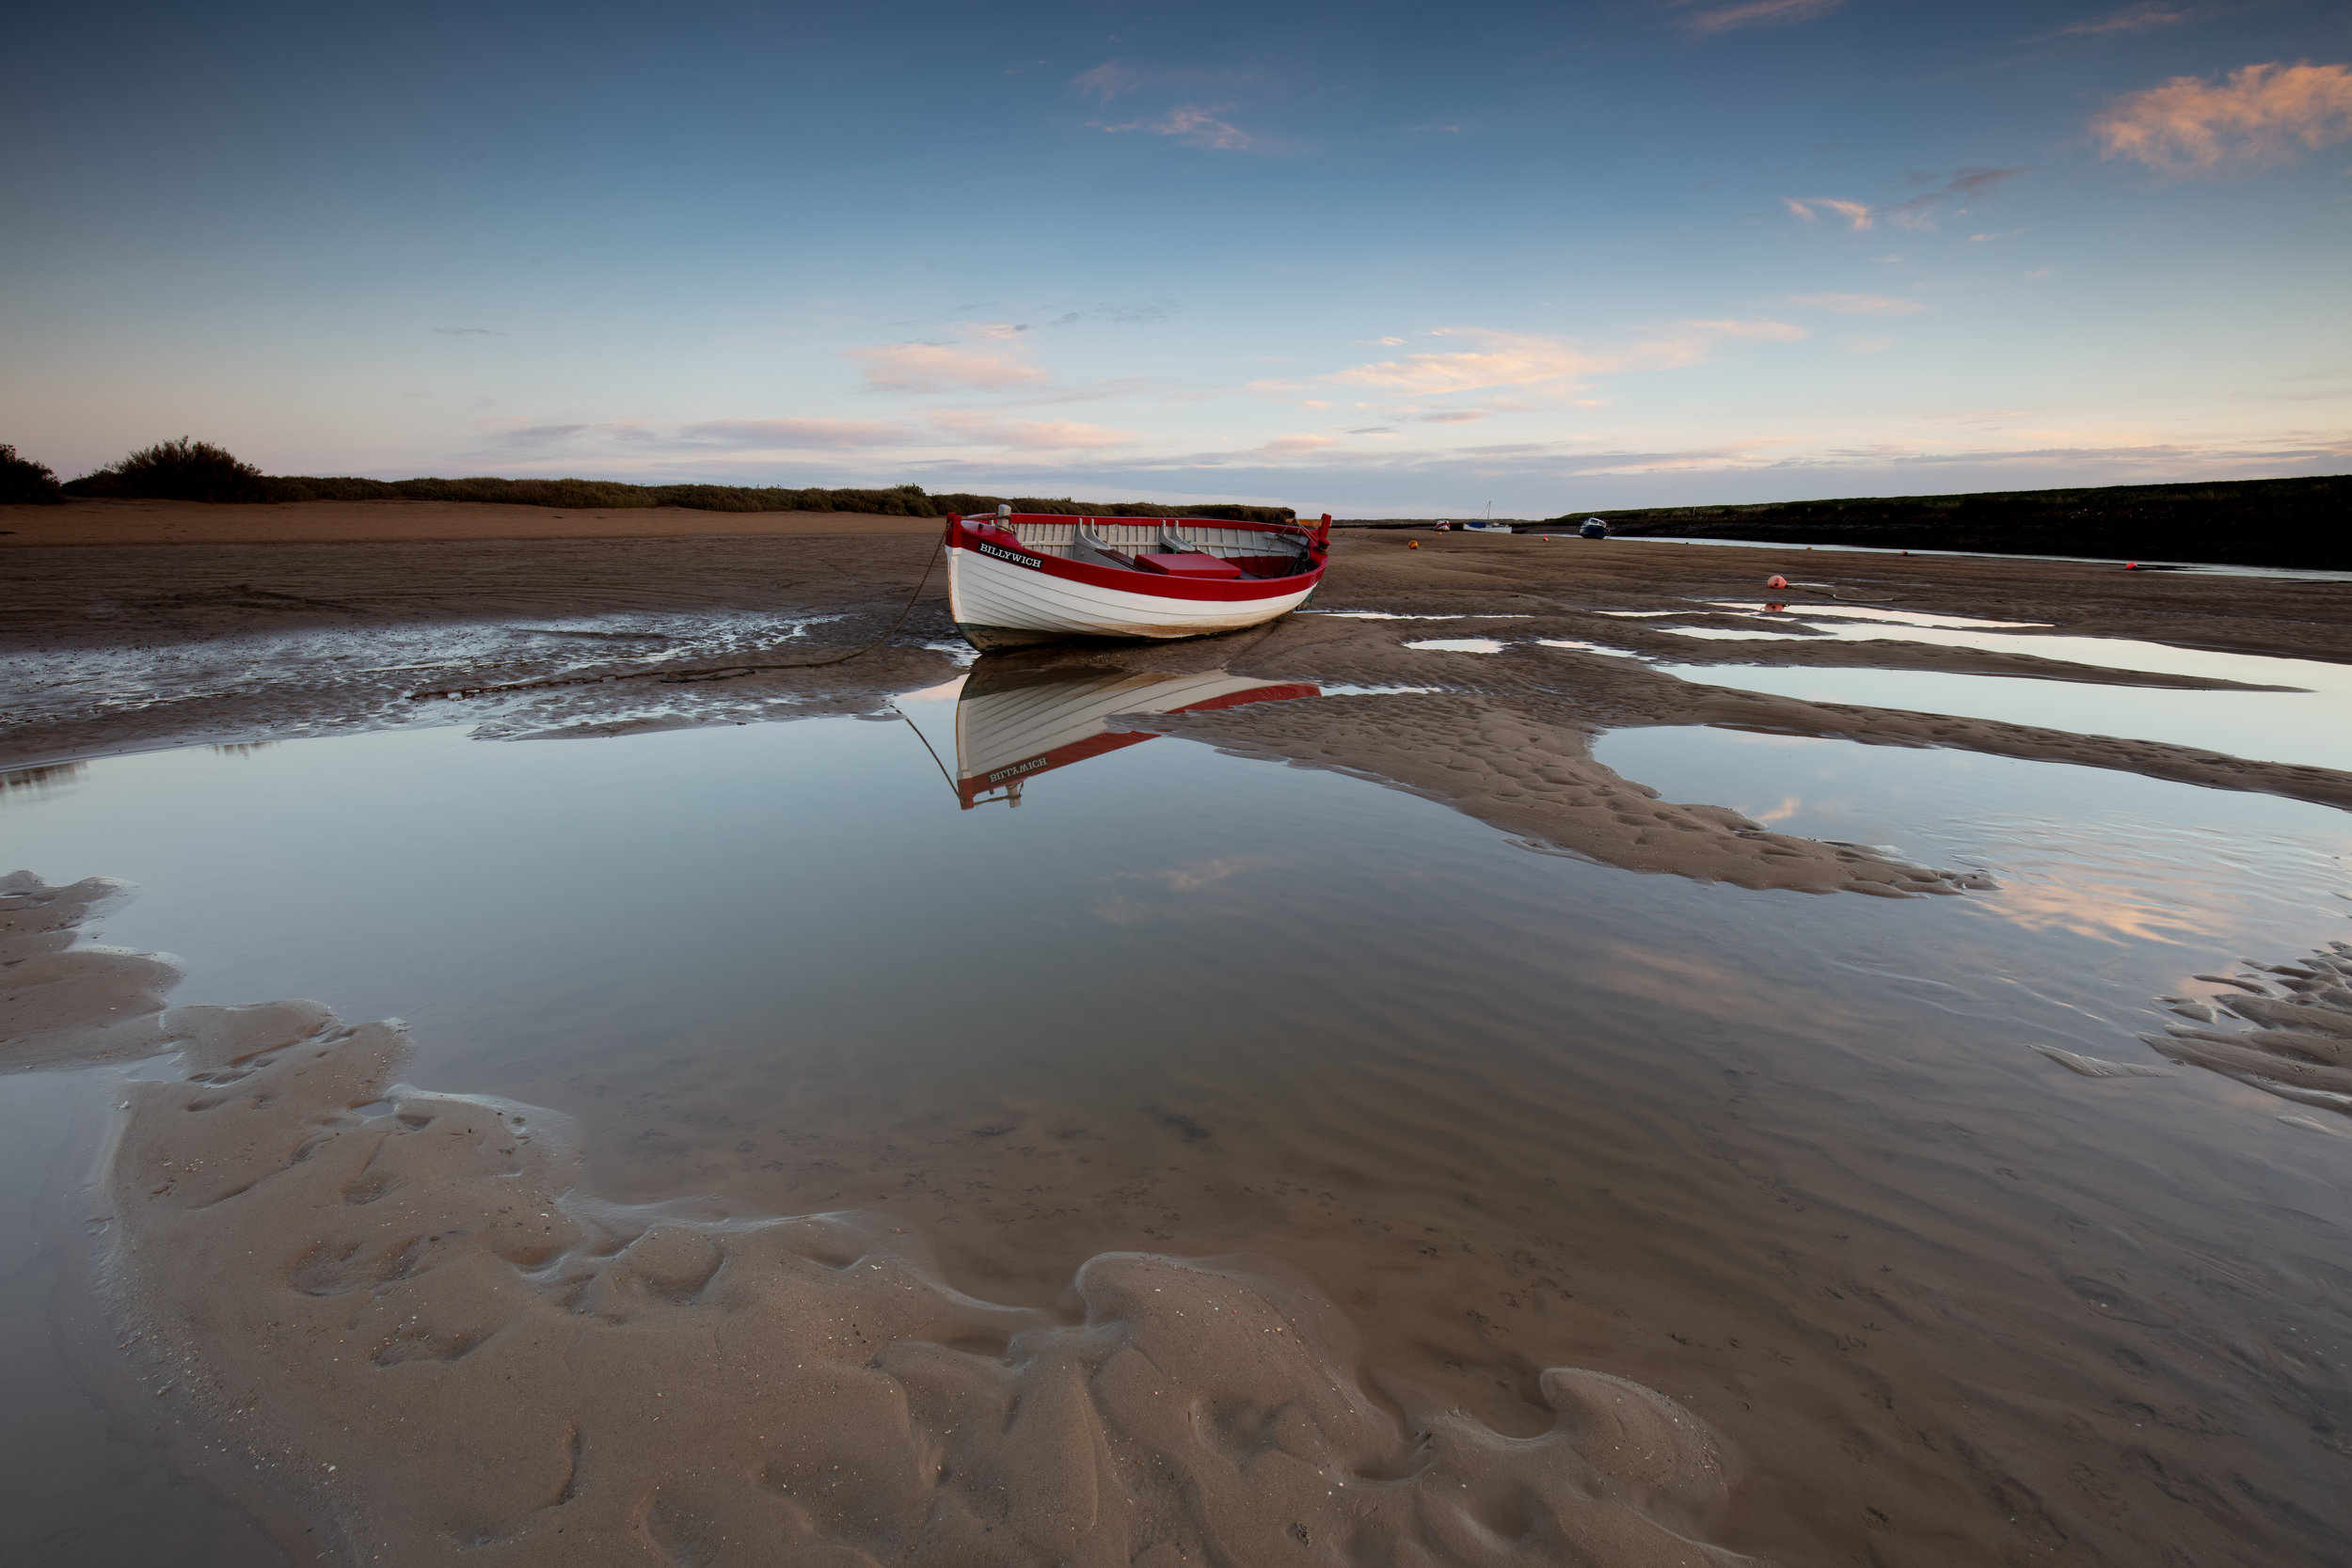 Early reflections, Morston, Norfolk.